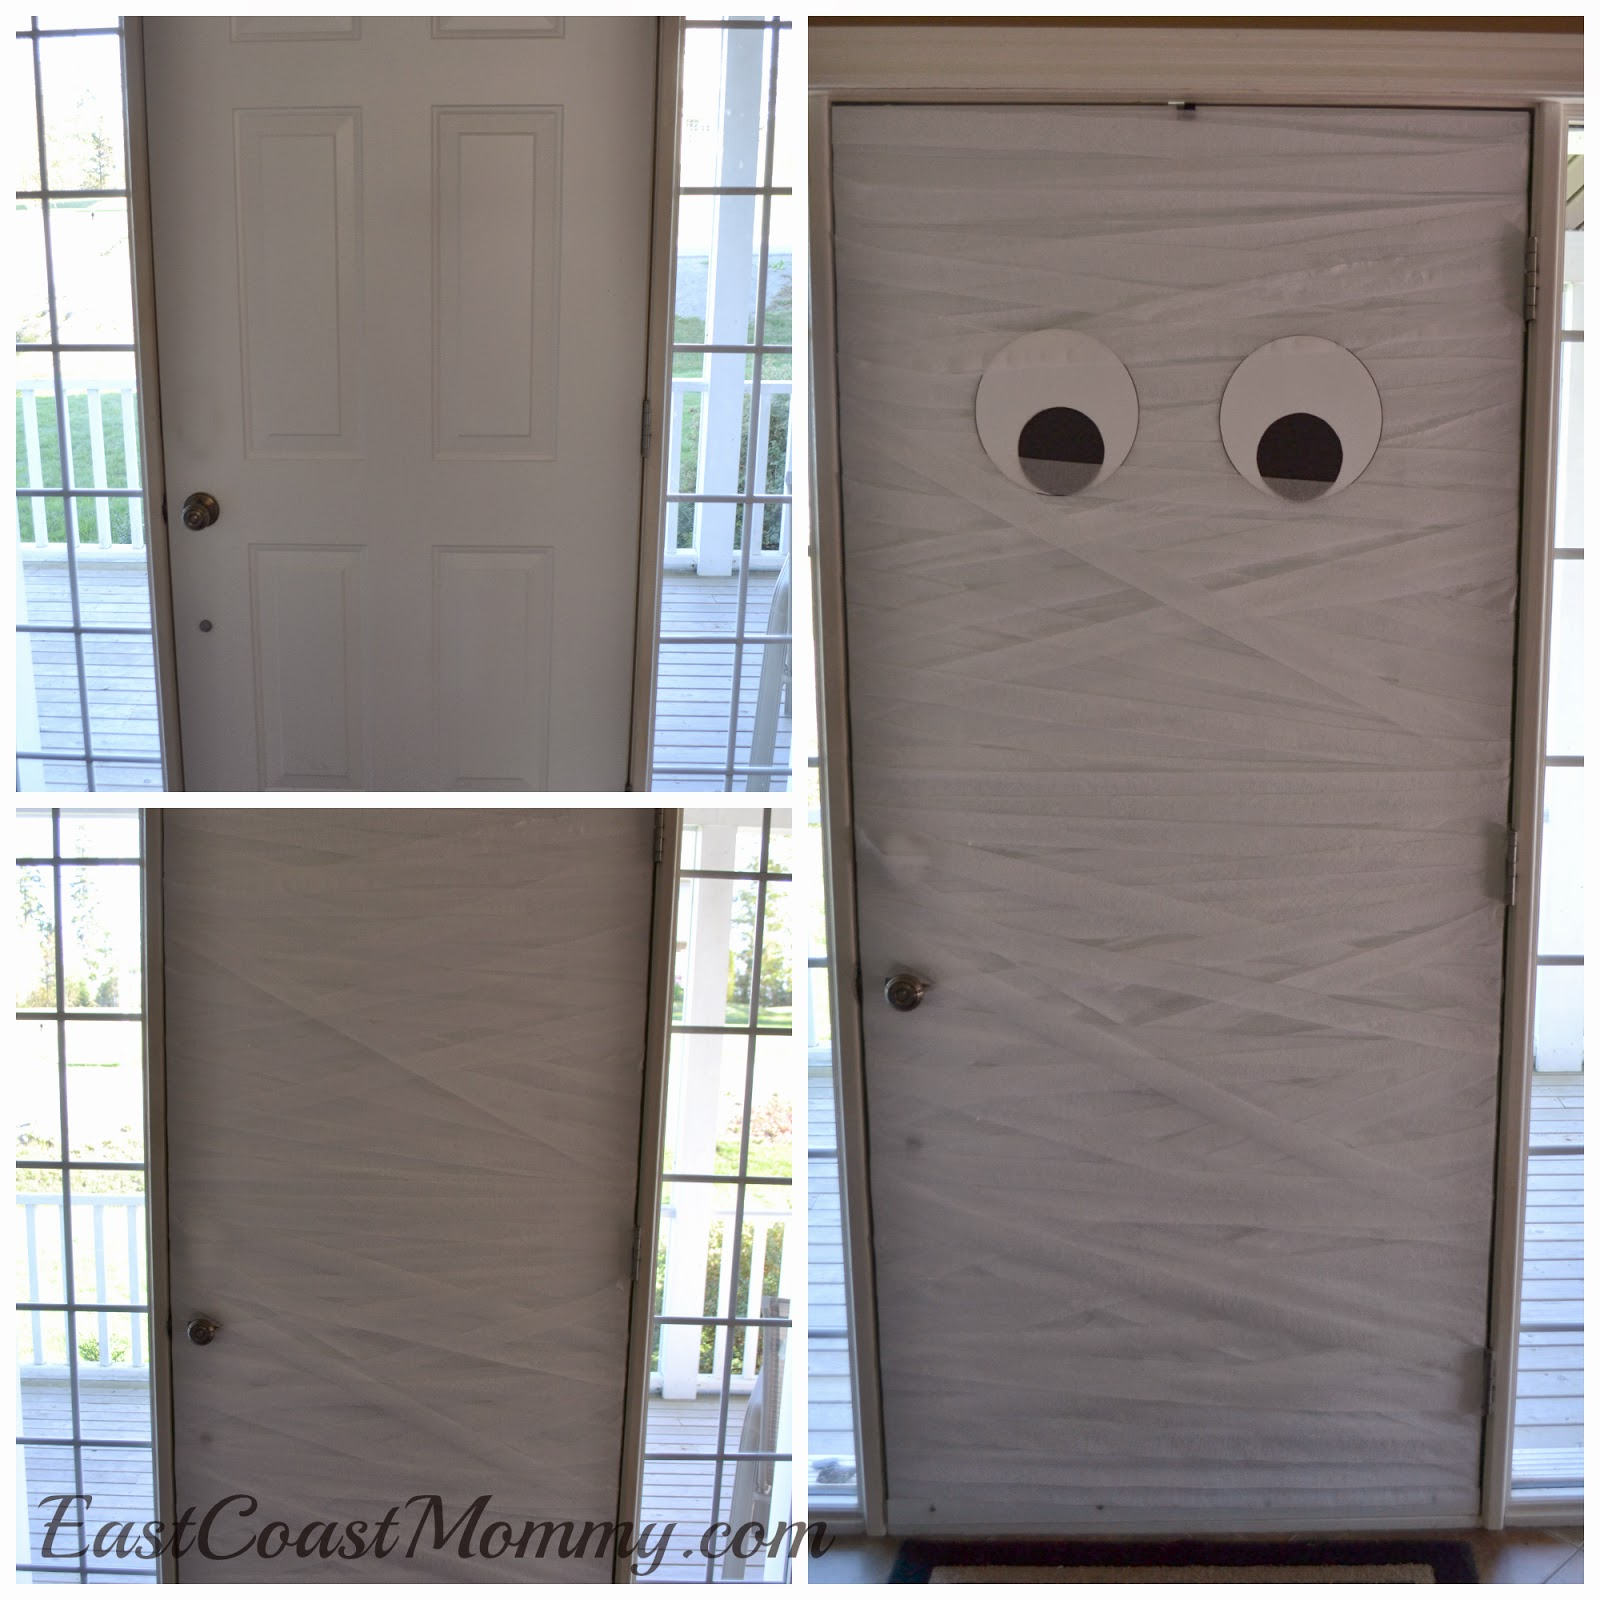 We love our Mummy Door and we canu0027t wait for our trick-or-treaters to see it. Happy Halloween! & East Coast Mommy: Mummy Door pezcame.com